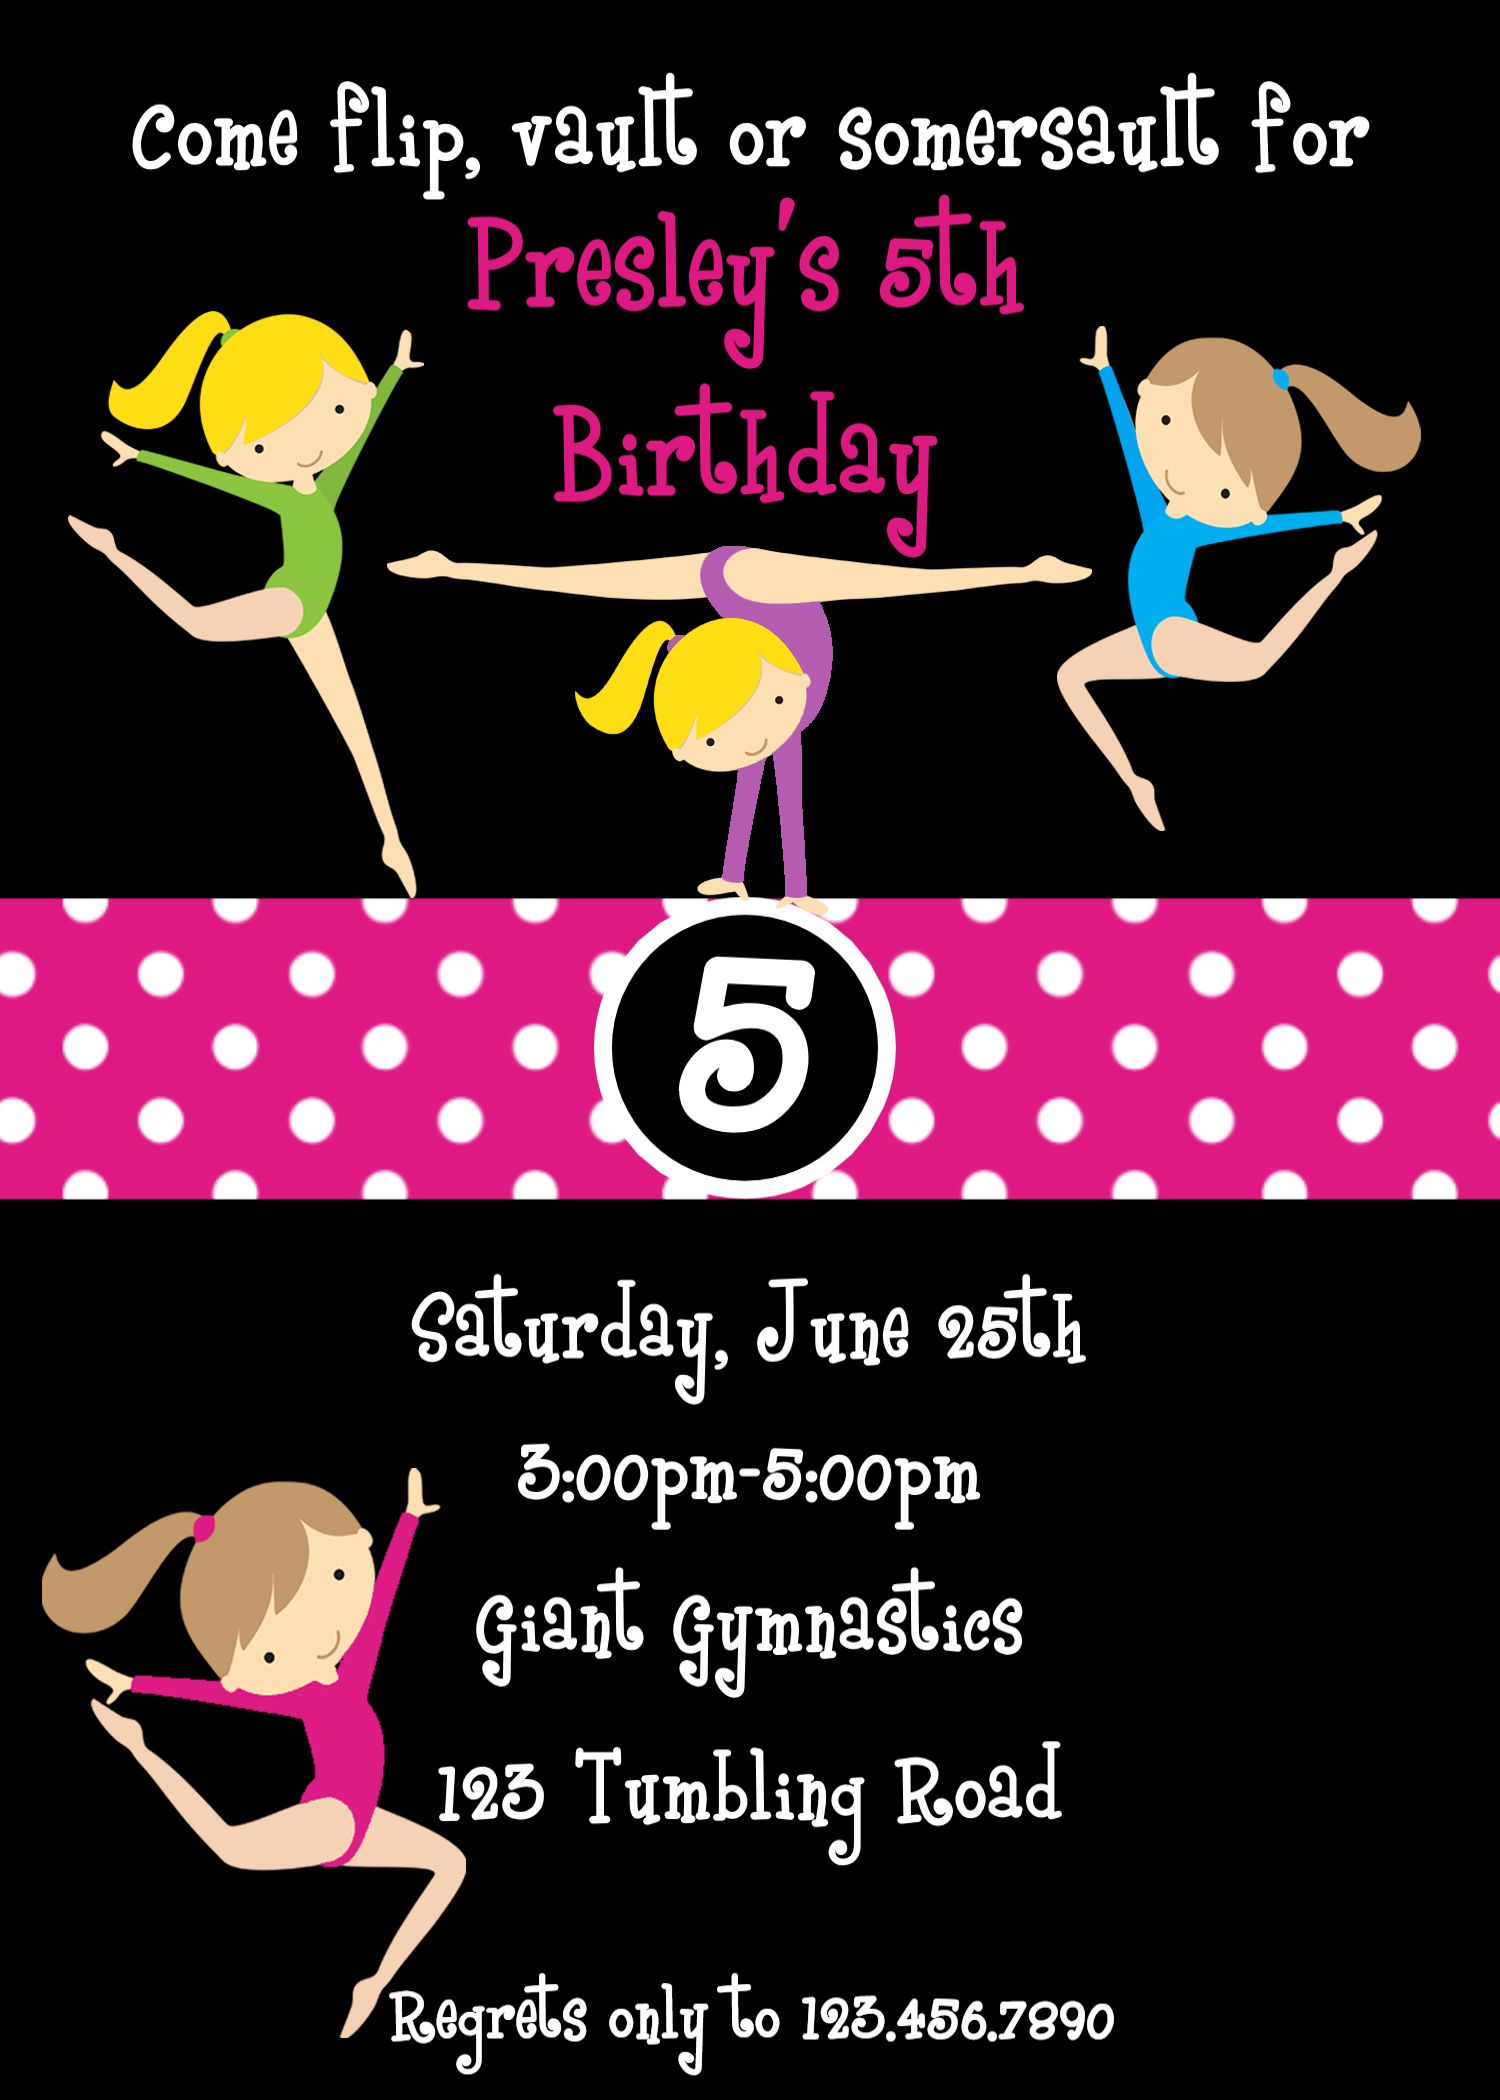 Marvellous Gymnastics Party Invitation Wording and gymnastics – Gymnastics Party Invitation